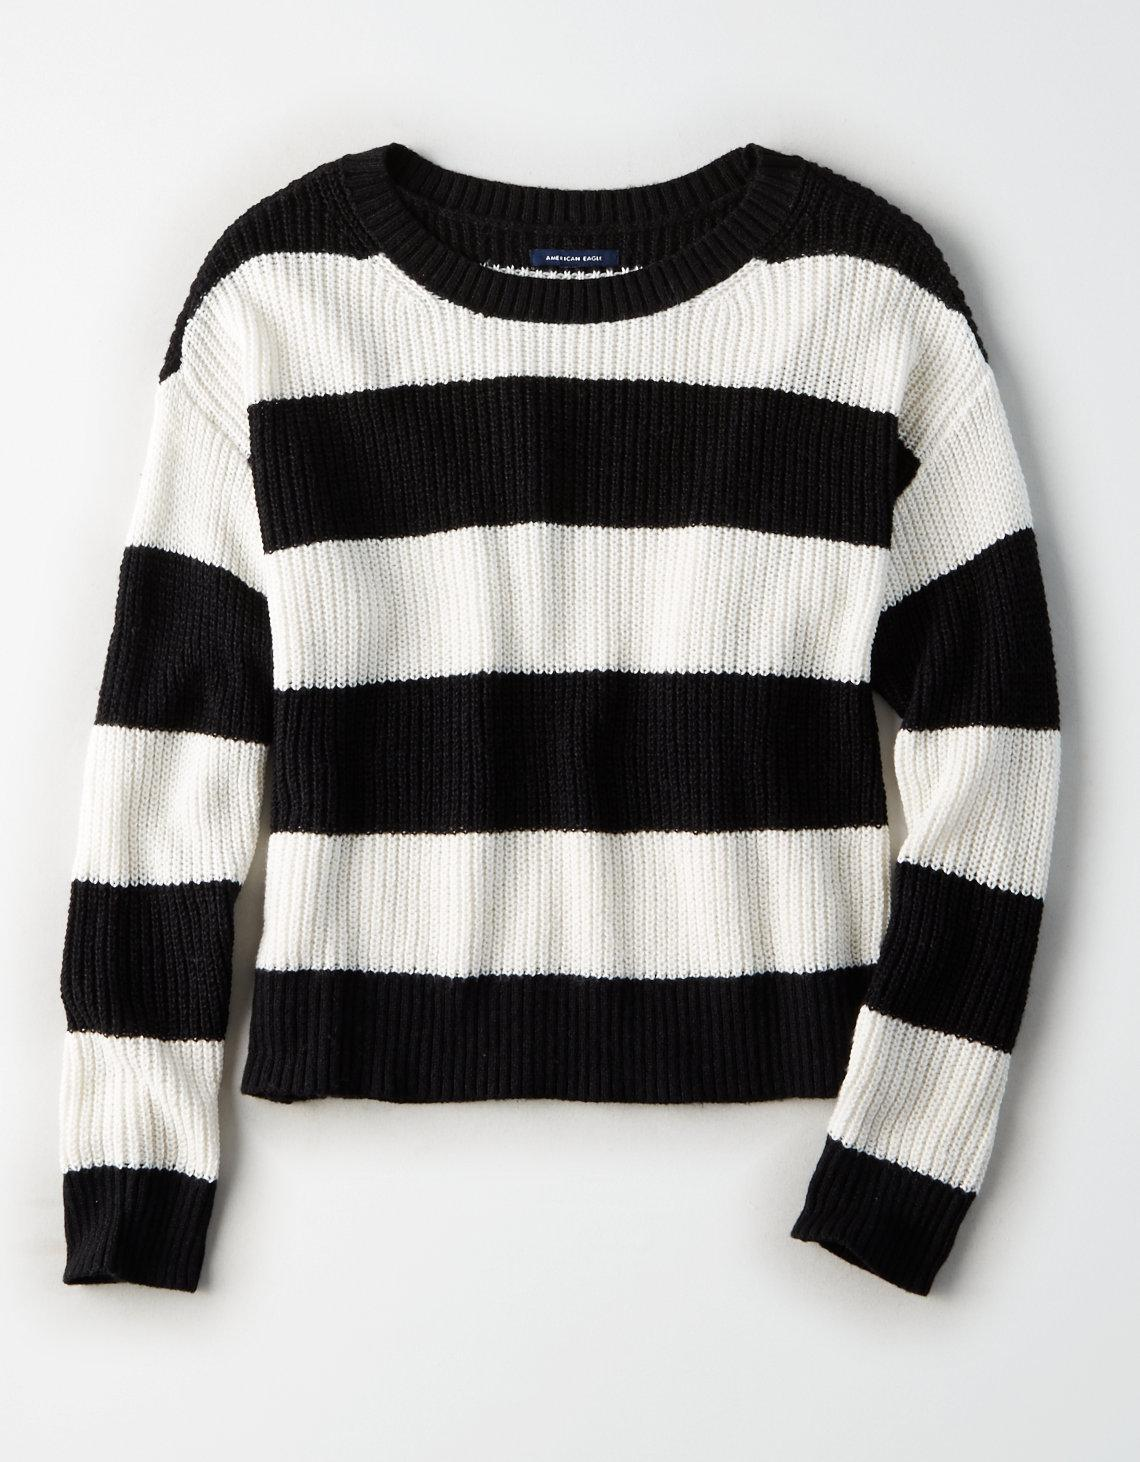 e0b74358f6 American Eagle Ae Rugby Stripe Sweater in Black - Lyst